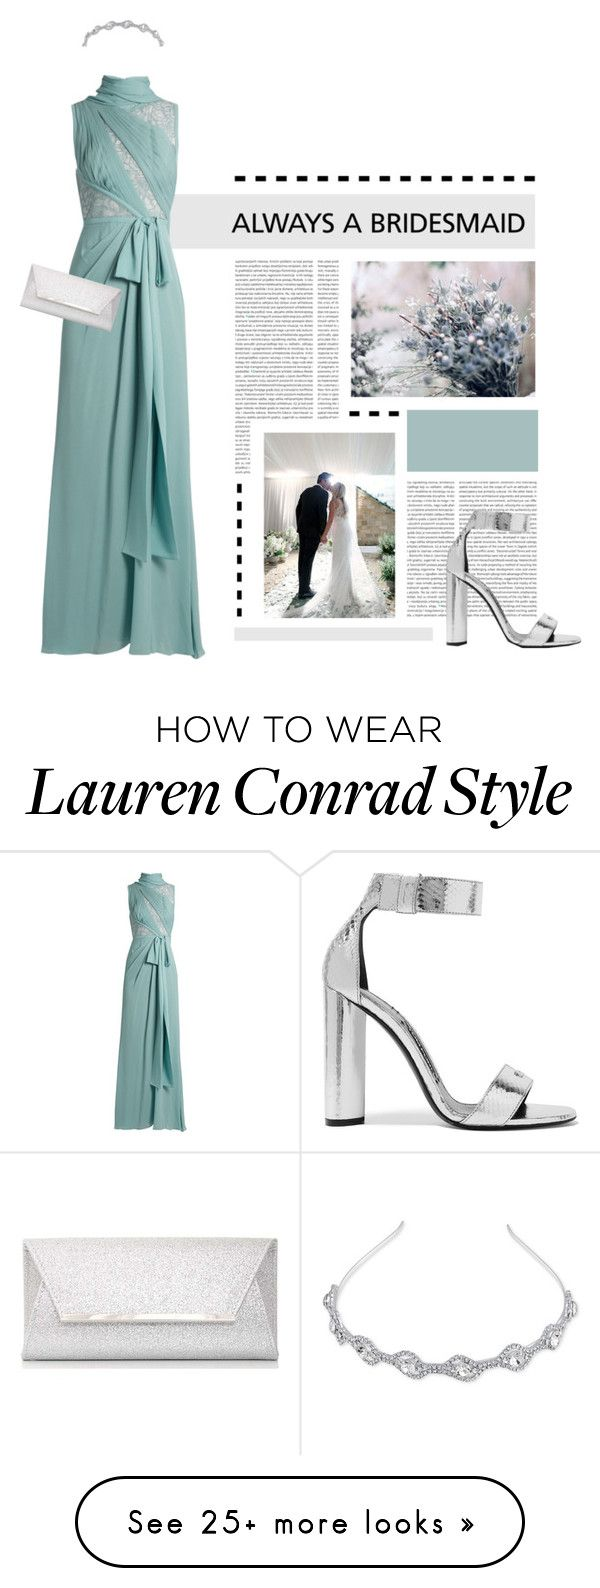 """""""Always Bridesmaid"""" by loveyourselves on Polyvore featuring Elie Saab, Dorothy Perkins, Lauren Conrad, Tom Ford, bride, mint, weddingdecor and alwaysbridesmaid"""